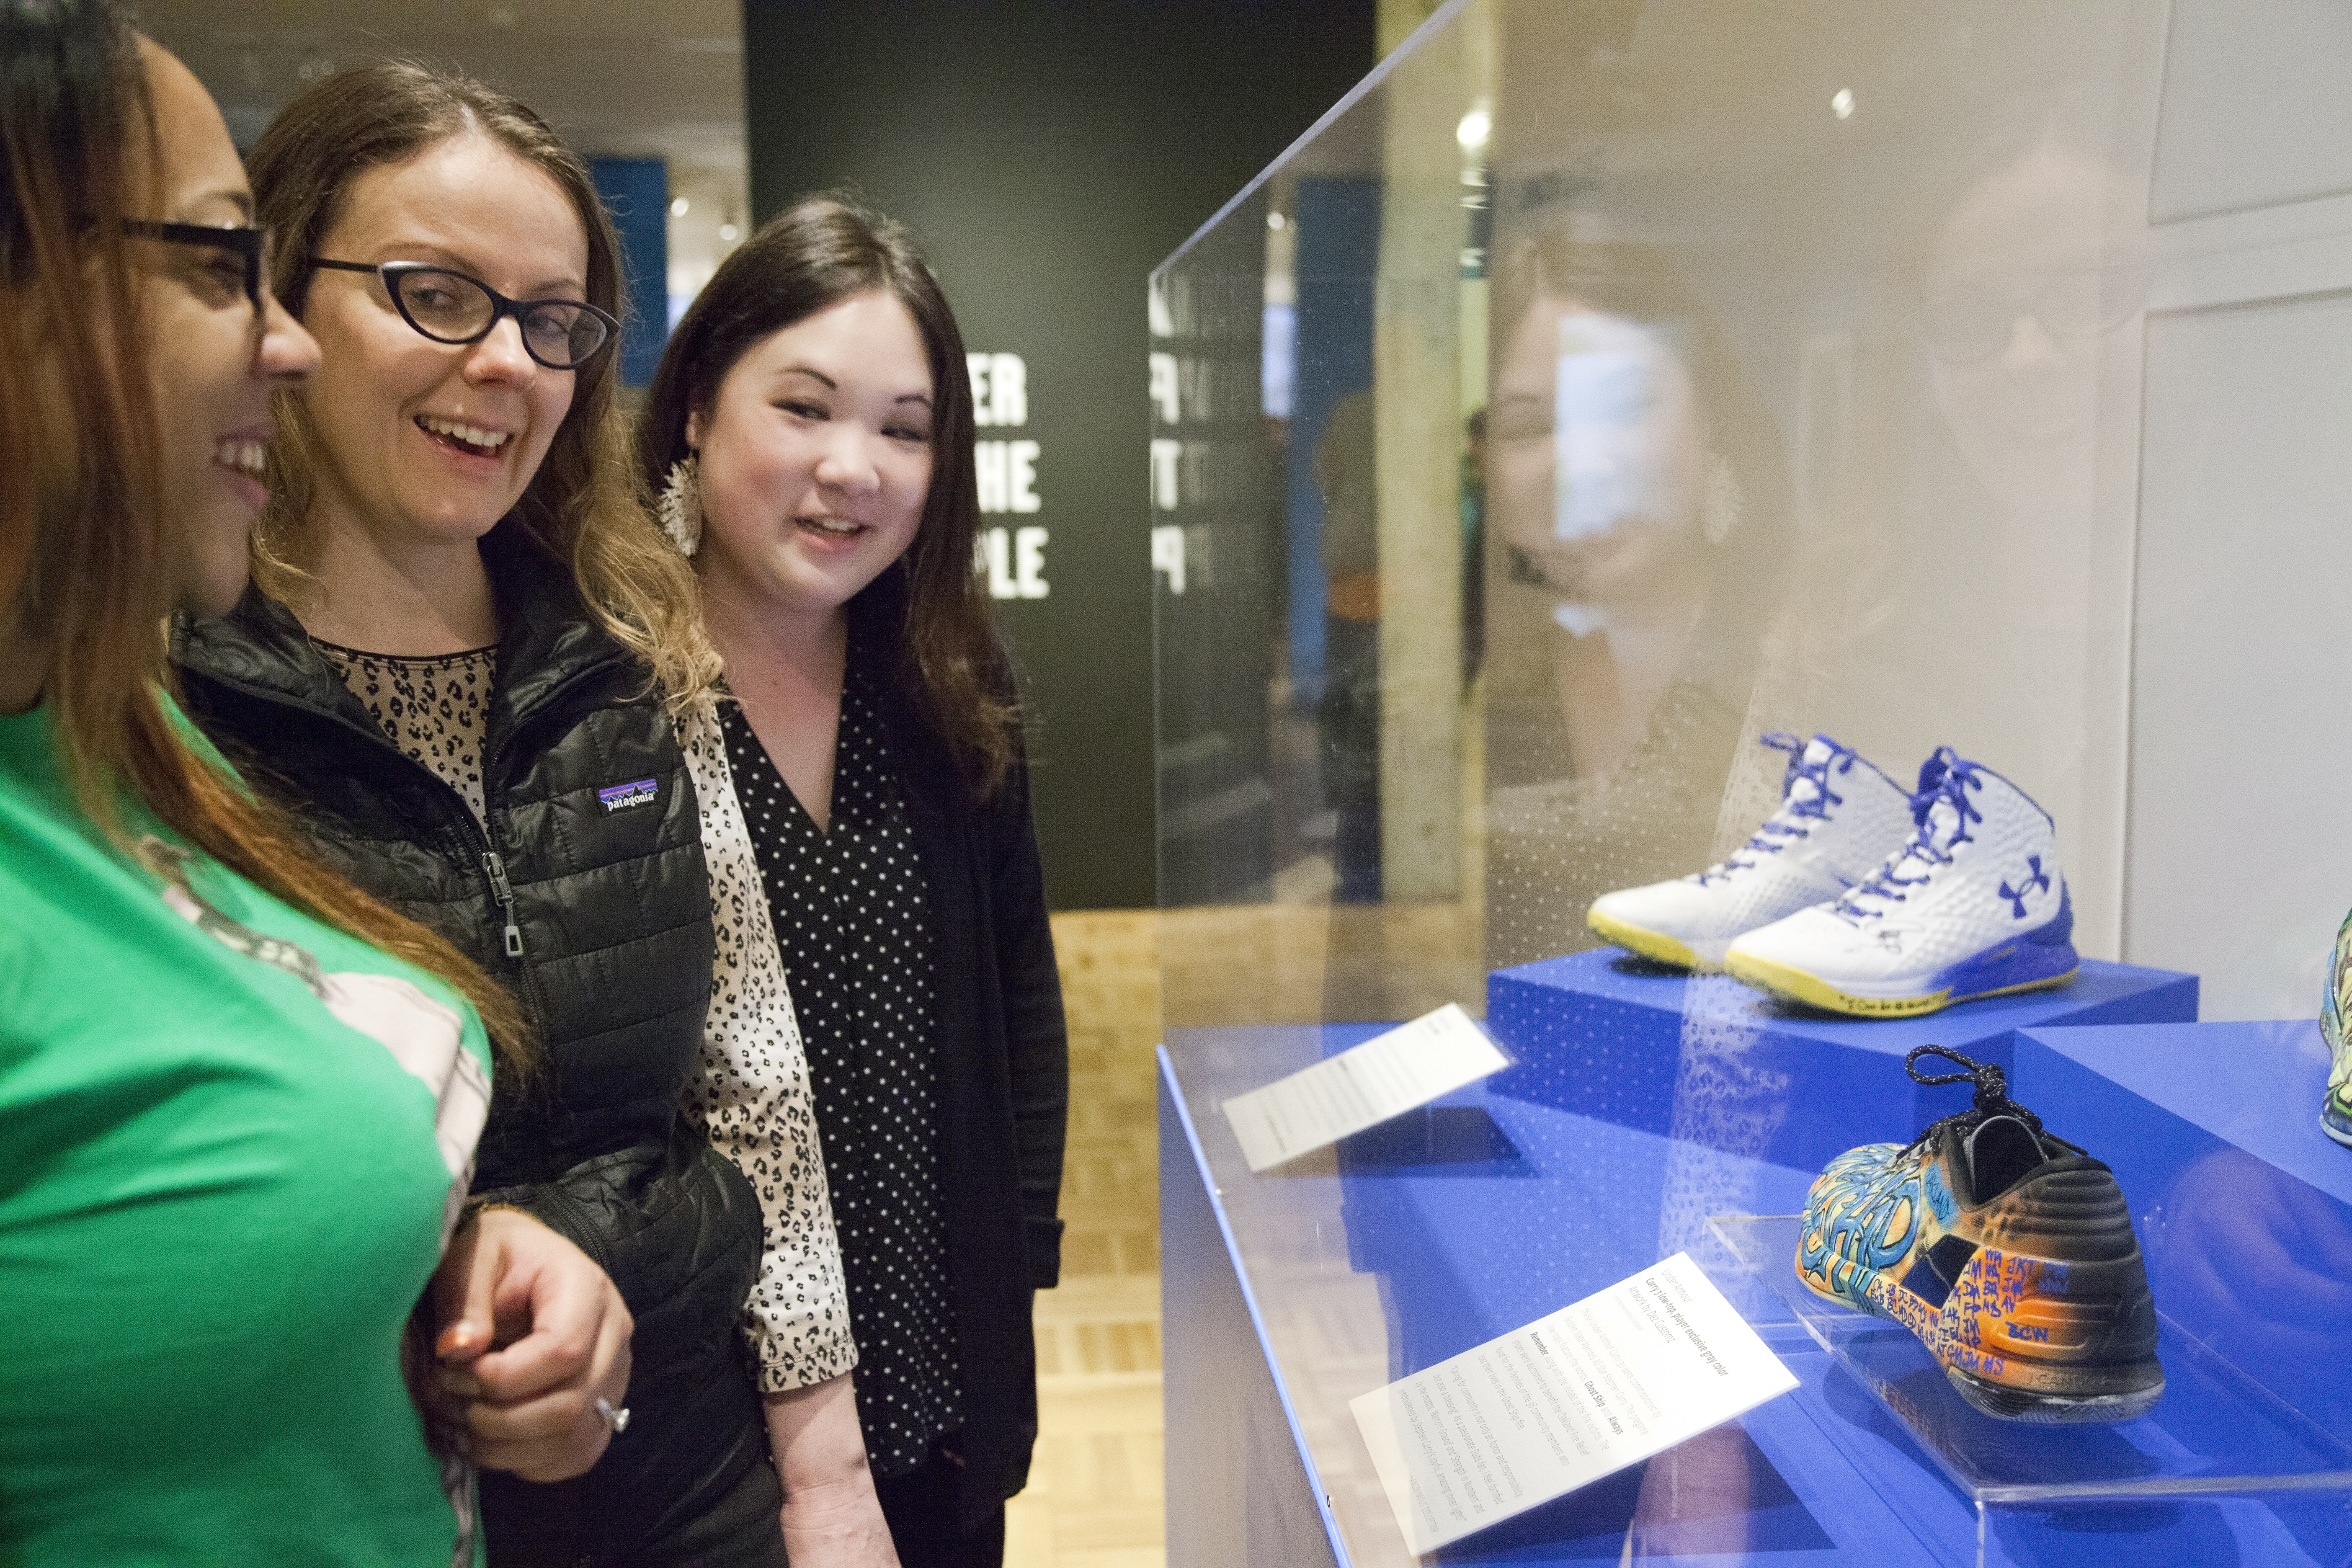 Visitors looking at the Oakland Strong display of Steph Curry's customized sneakers on view at the Oakland Museum of California.